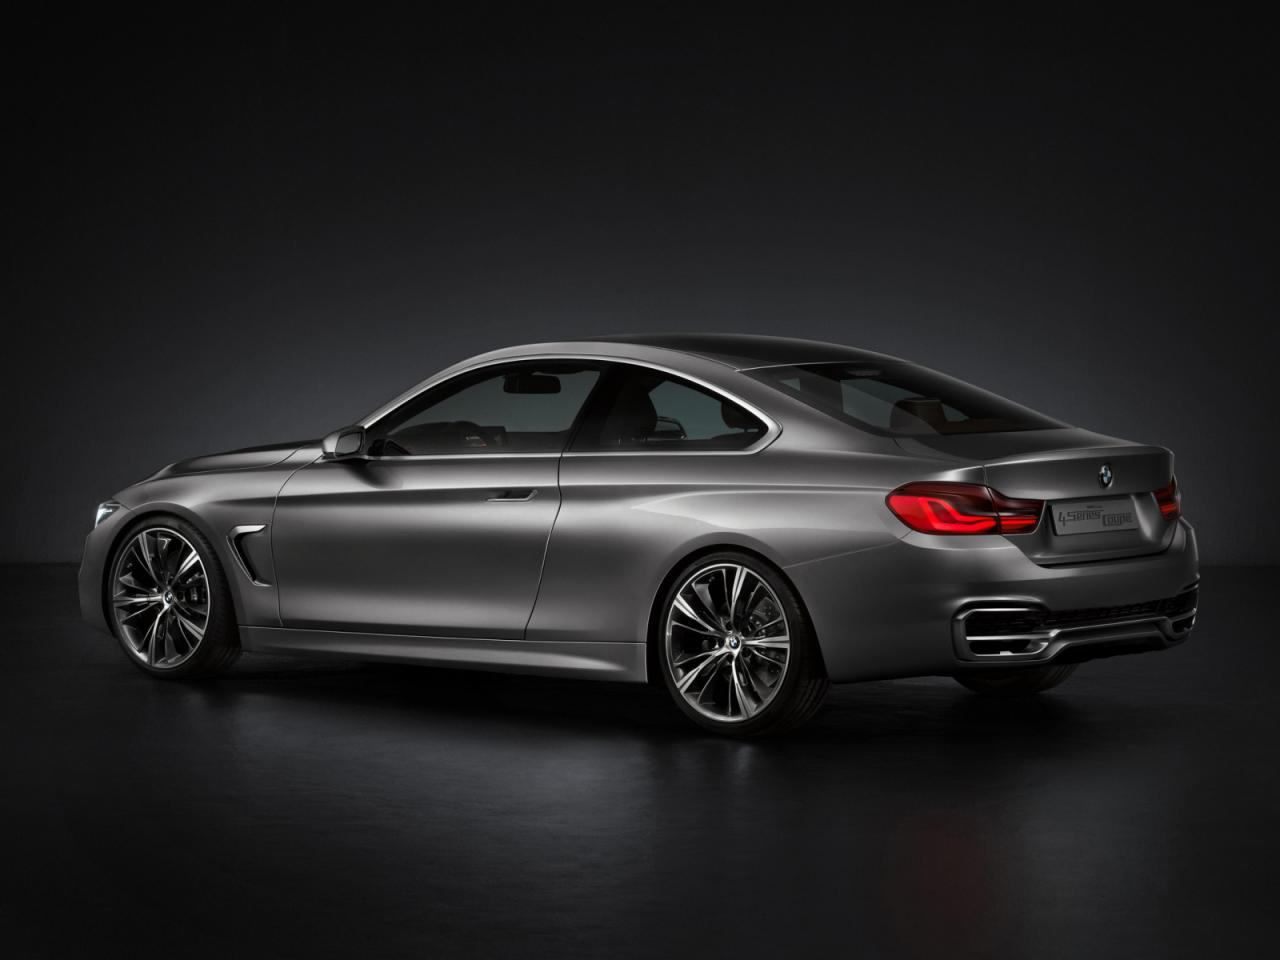 New BMW 4-Series Coupe Concept (F32): The New 3-Coupe (All Official